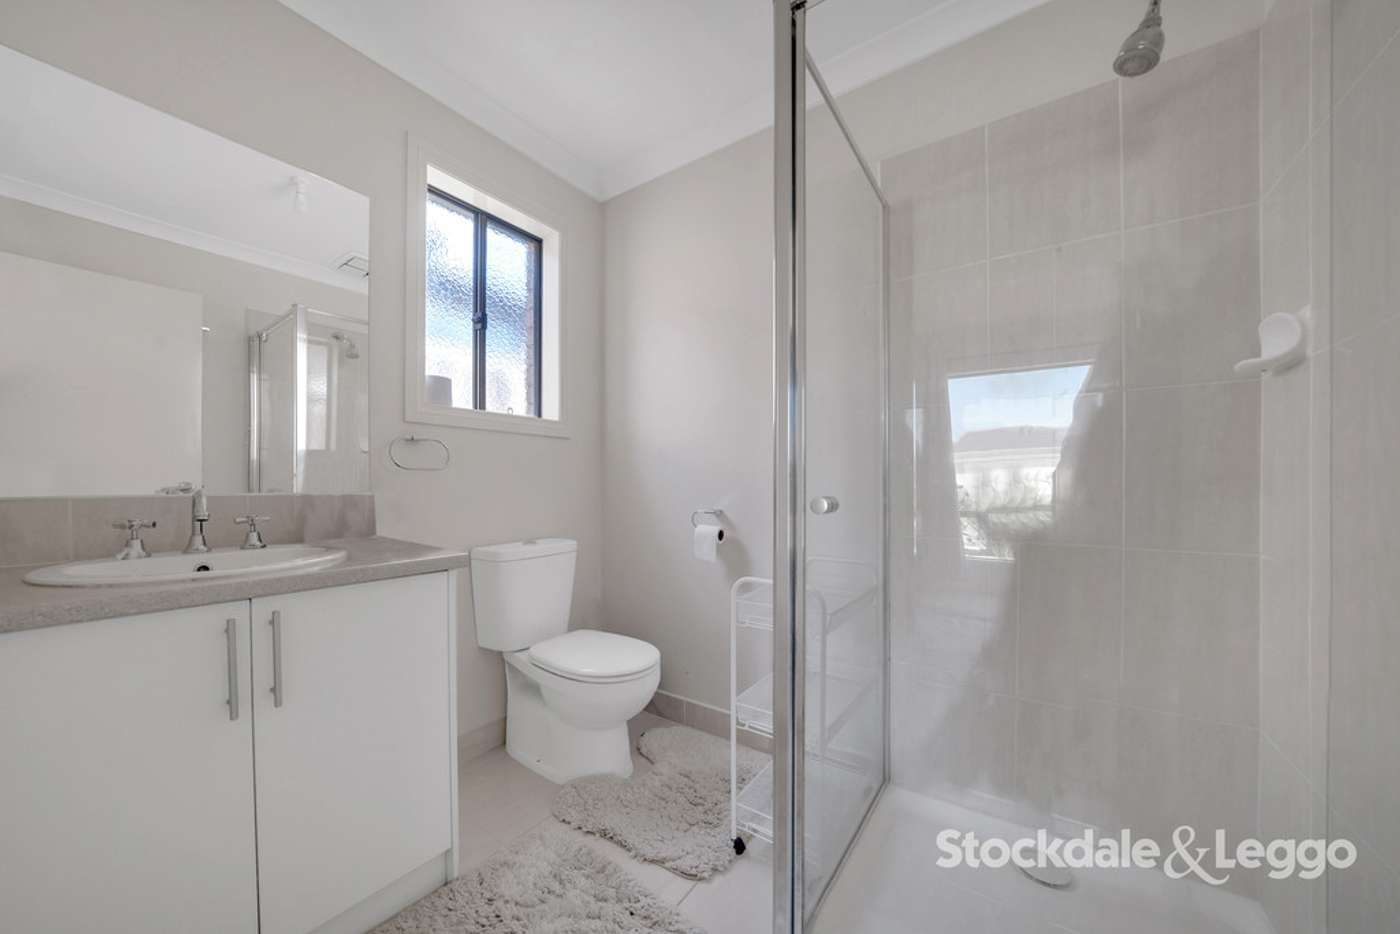 Sixth view of Homely house listing, 9 Chapman Drive, Wyndham Vale VIC 3024